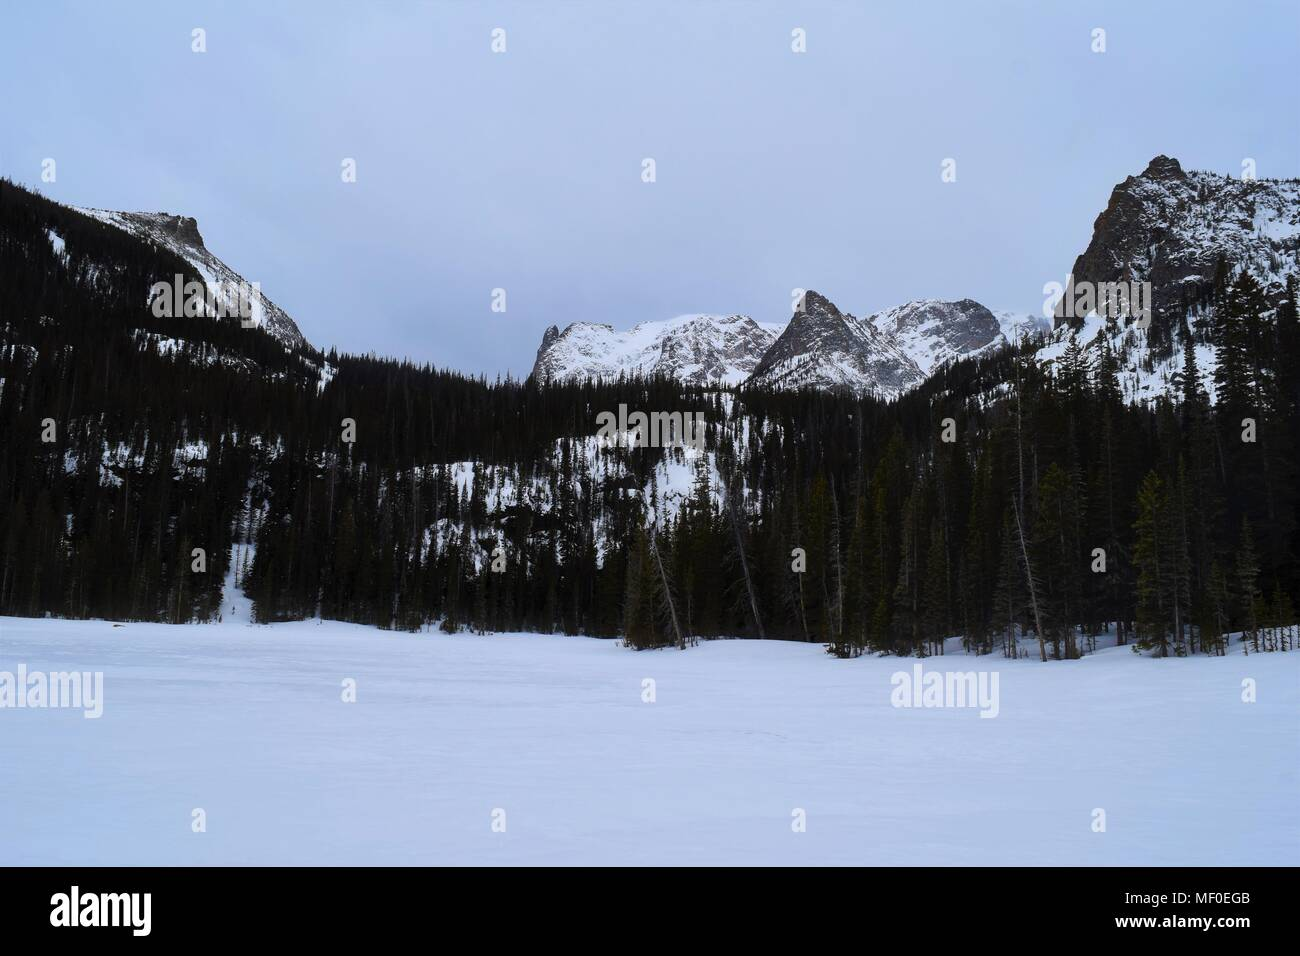 This peaceful winter landscape features a clear sky, forest of evergreen trees, and snow covered mountaintops. Taken in Rocky Mountain National Park. - Stock Image